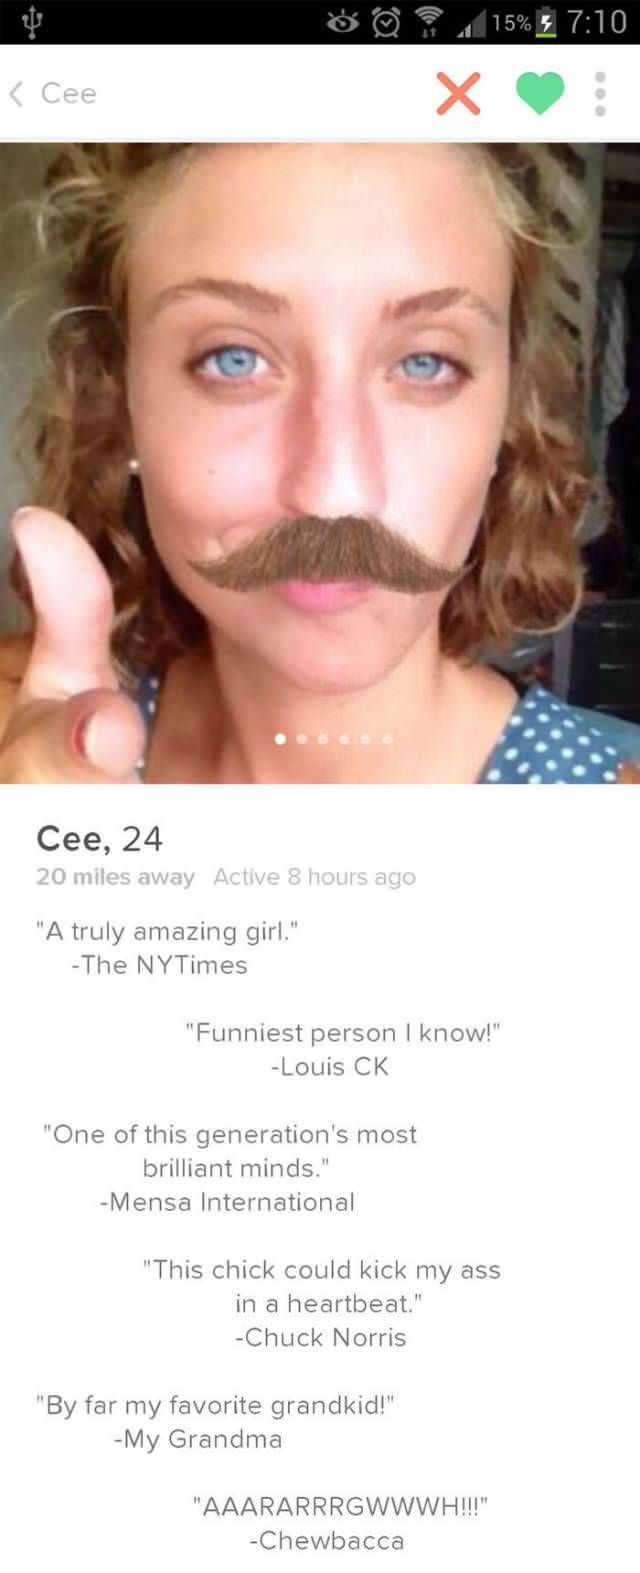 Tinder profile of Cee who is wearing a fake mustache and seems to be very funny